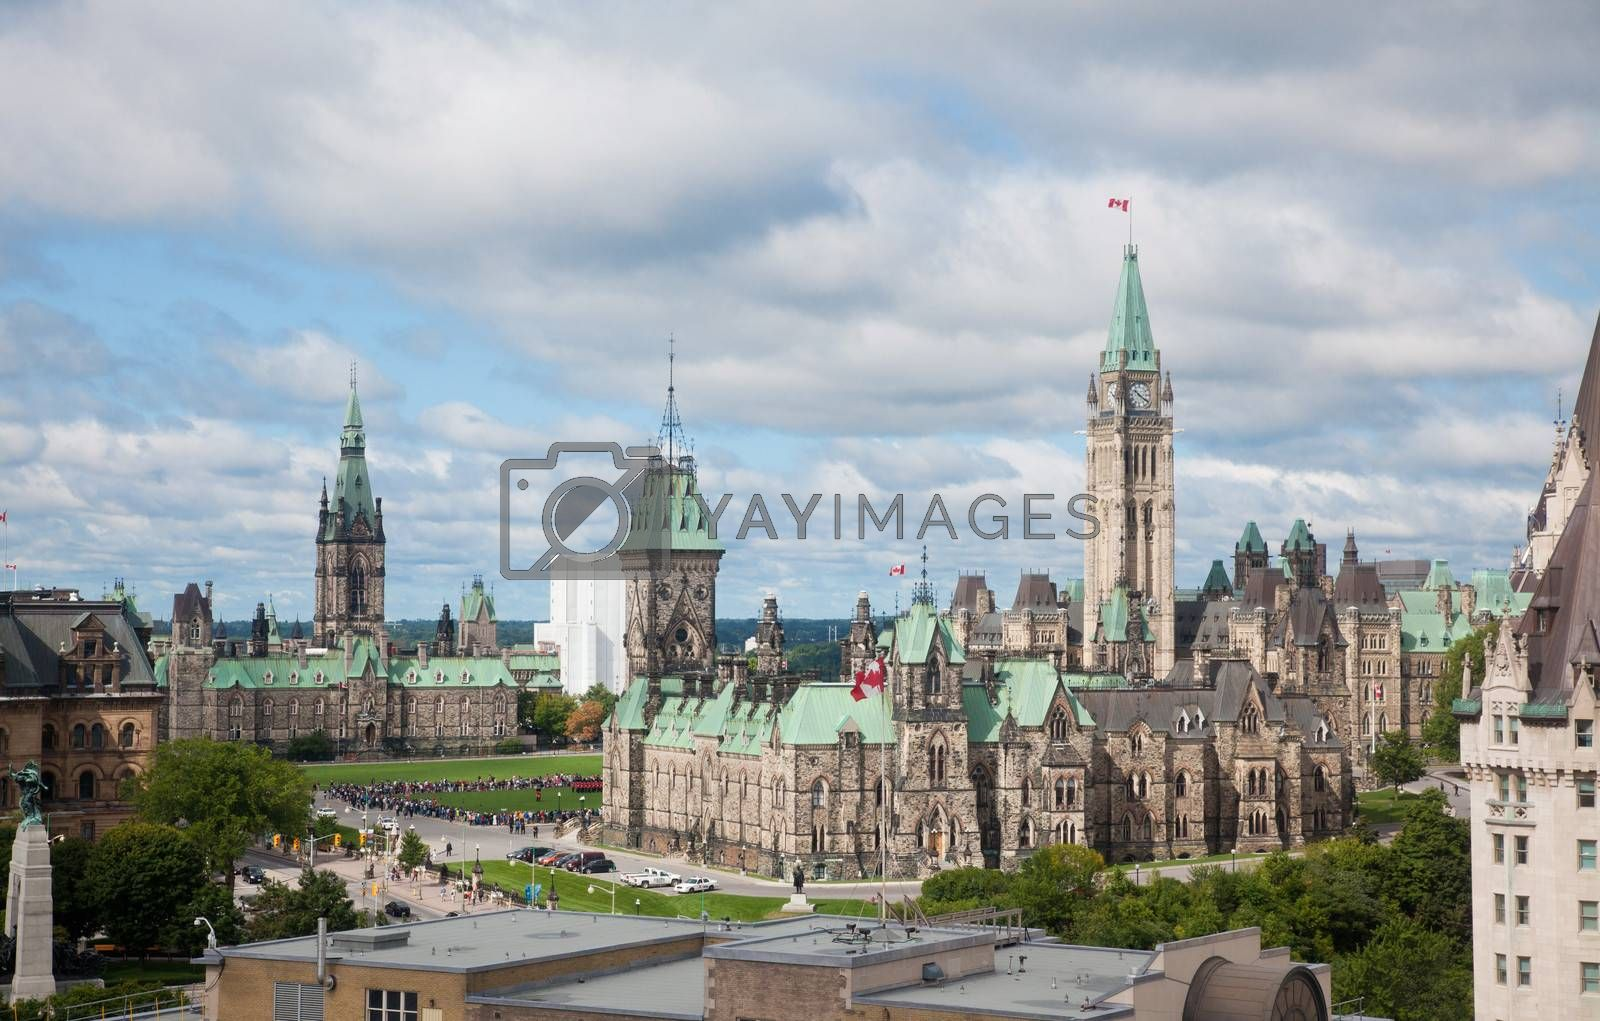 Royalty free image of Parliament Buildings in Ottawa, Canada by gary718